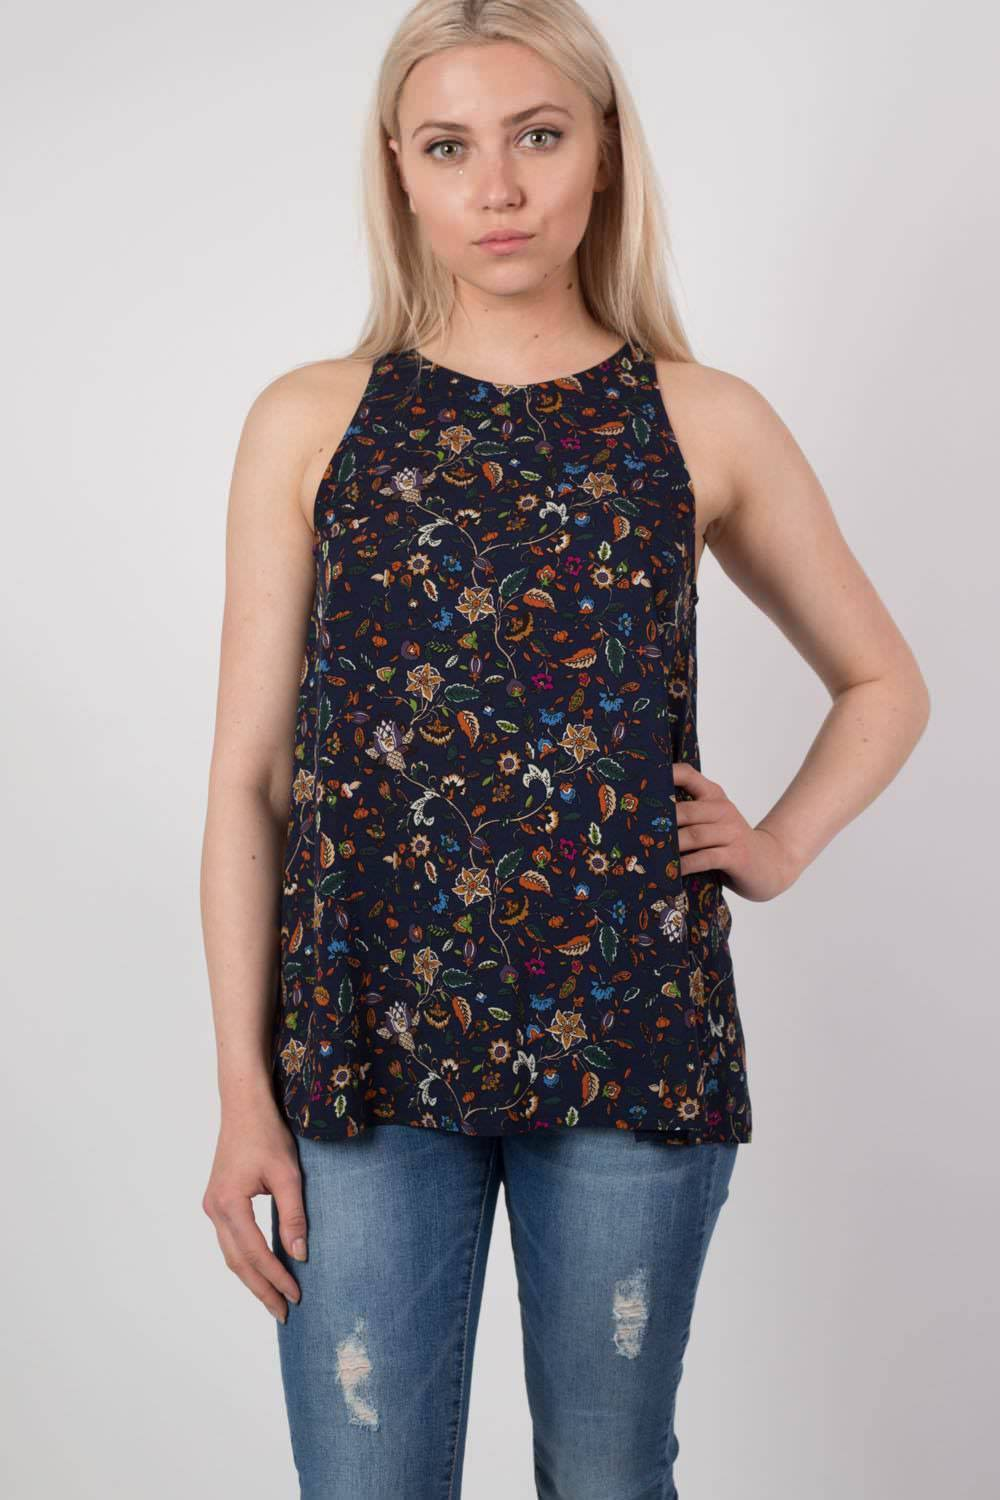 Floral Print Split Back Sleeveless Top in Navy Blue MODEL FRONT